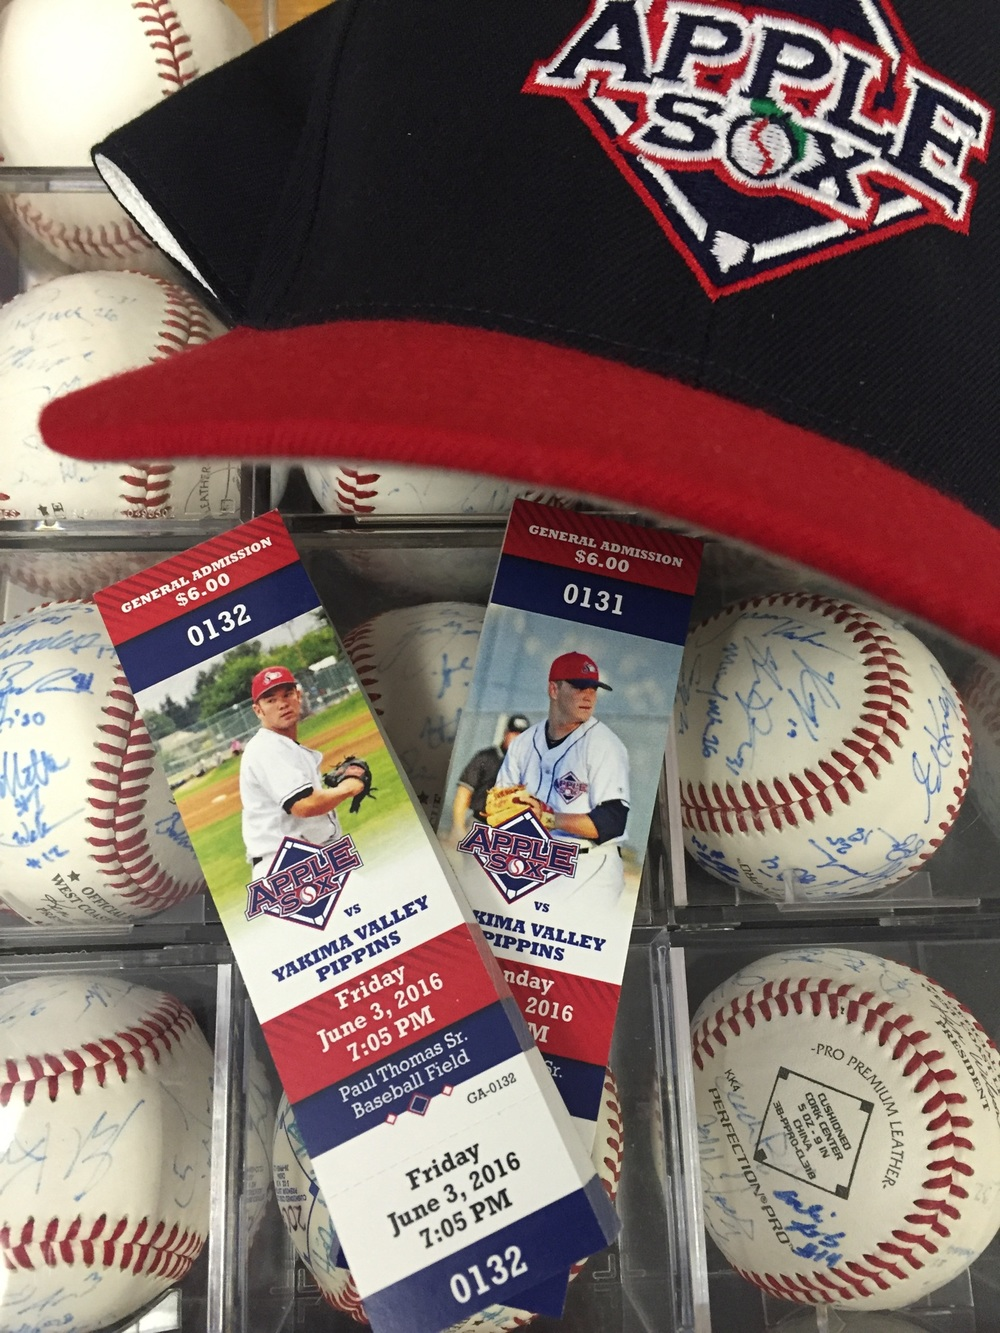 The Wenatchee AppleSox will be hosting its annual Fan Fest, Wednesday, June 1 at 5 p.m. at Paul Thomas Sr. Field on the campus of Wenatchee Valley College. There will be a contest giving away two season tickets (a $430 value!).